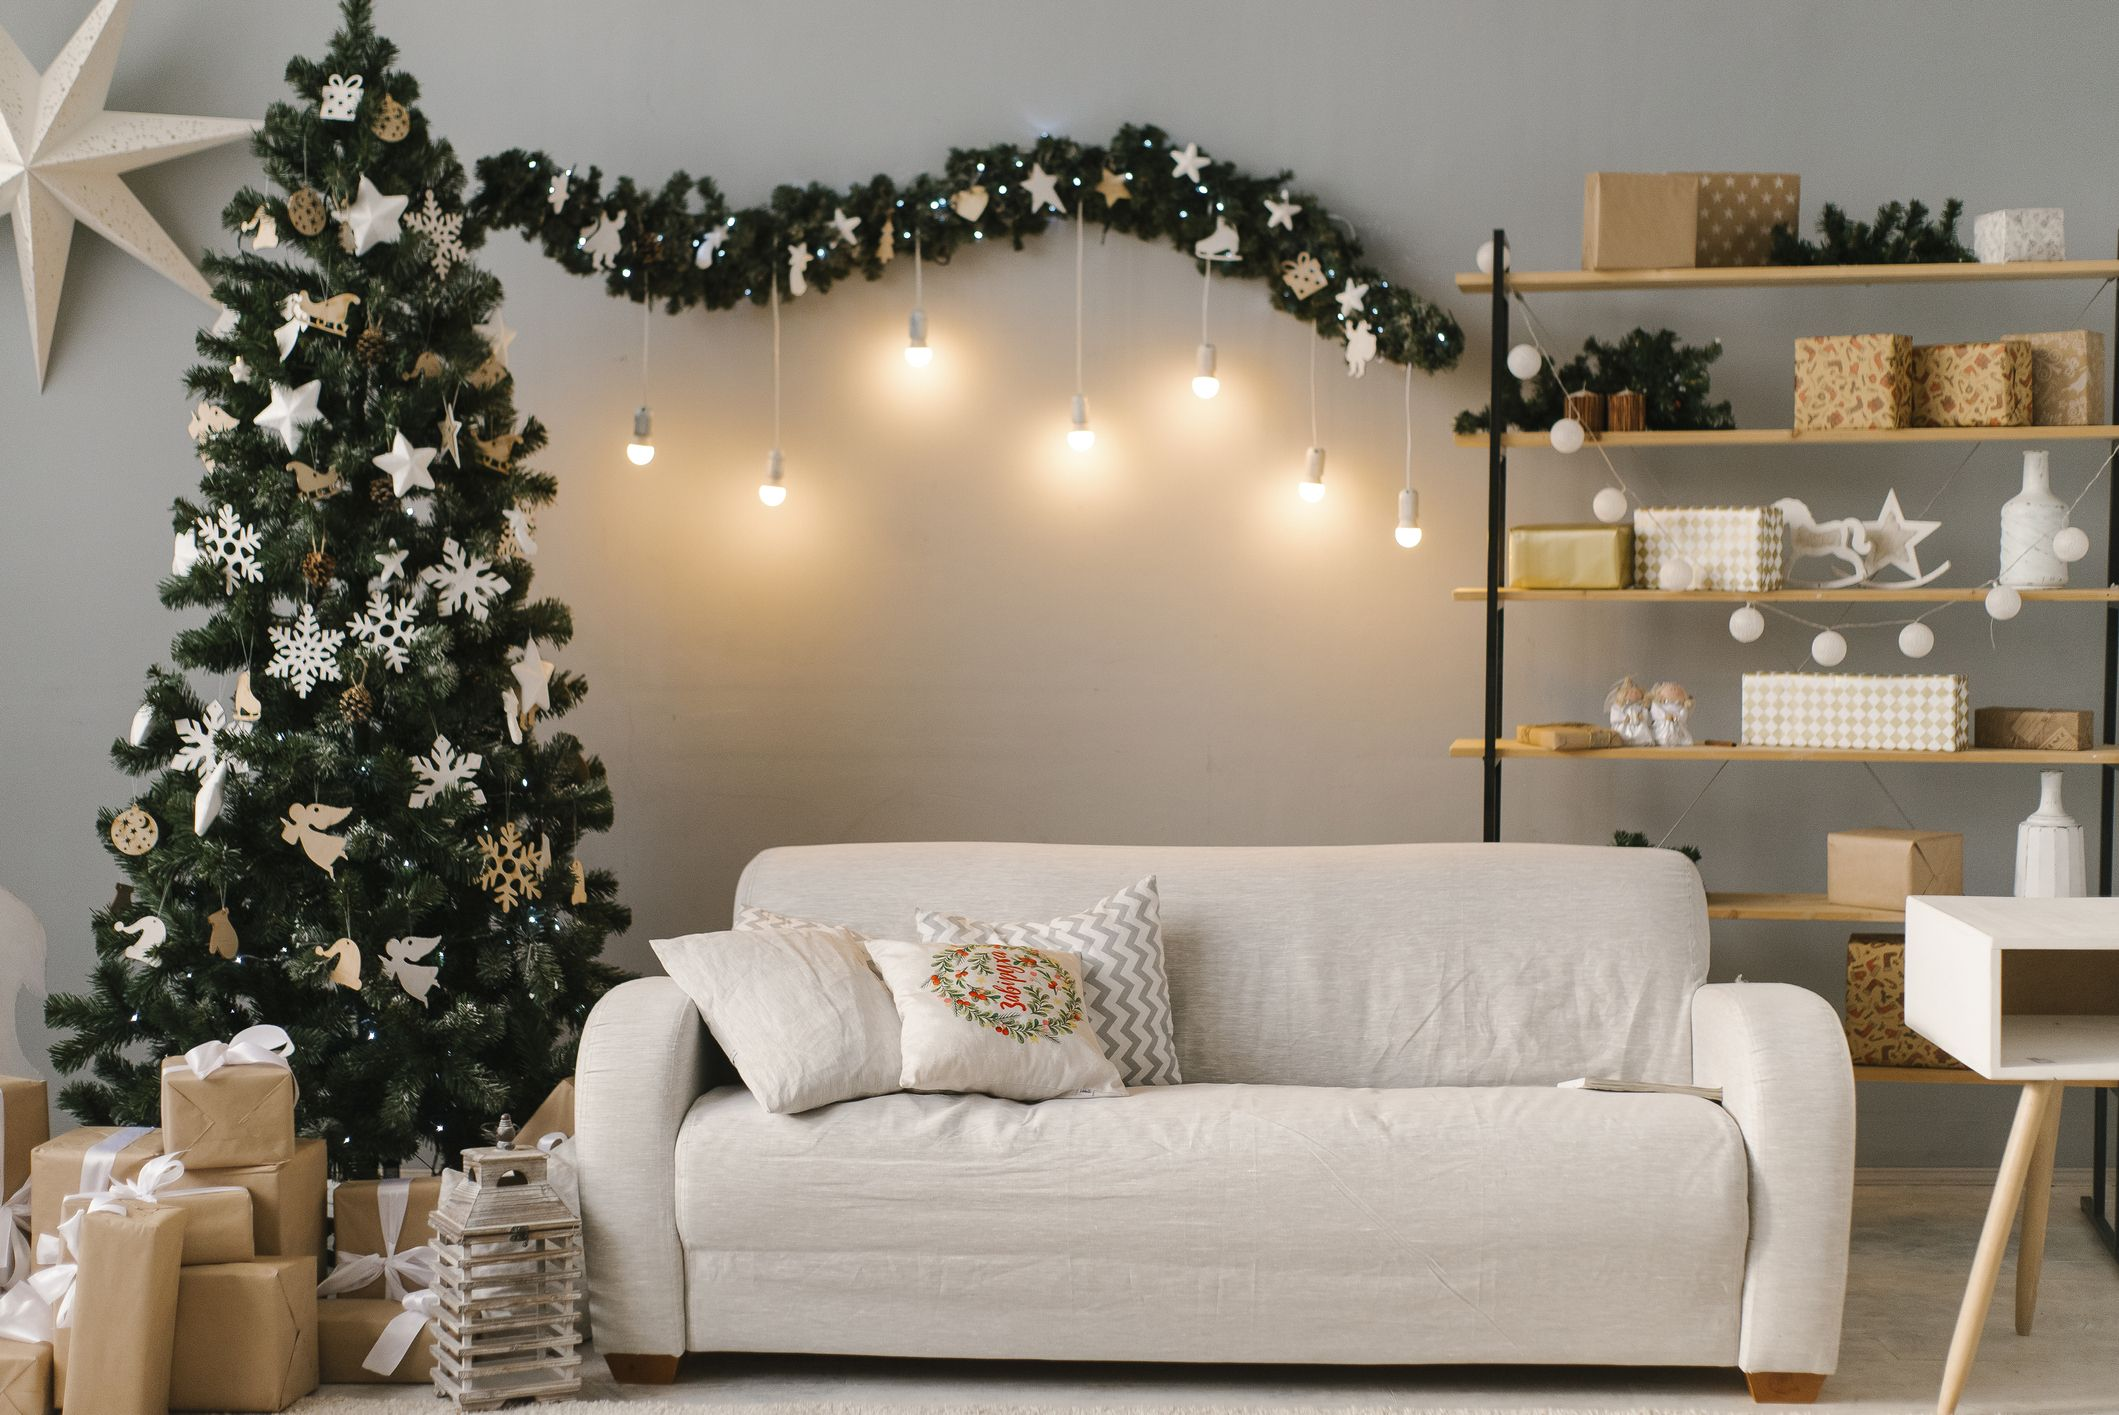 50 Christmas Decoration Ideas 2020 - Pretty Holiday Decor